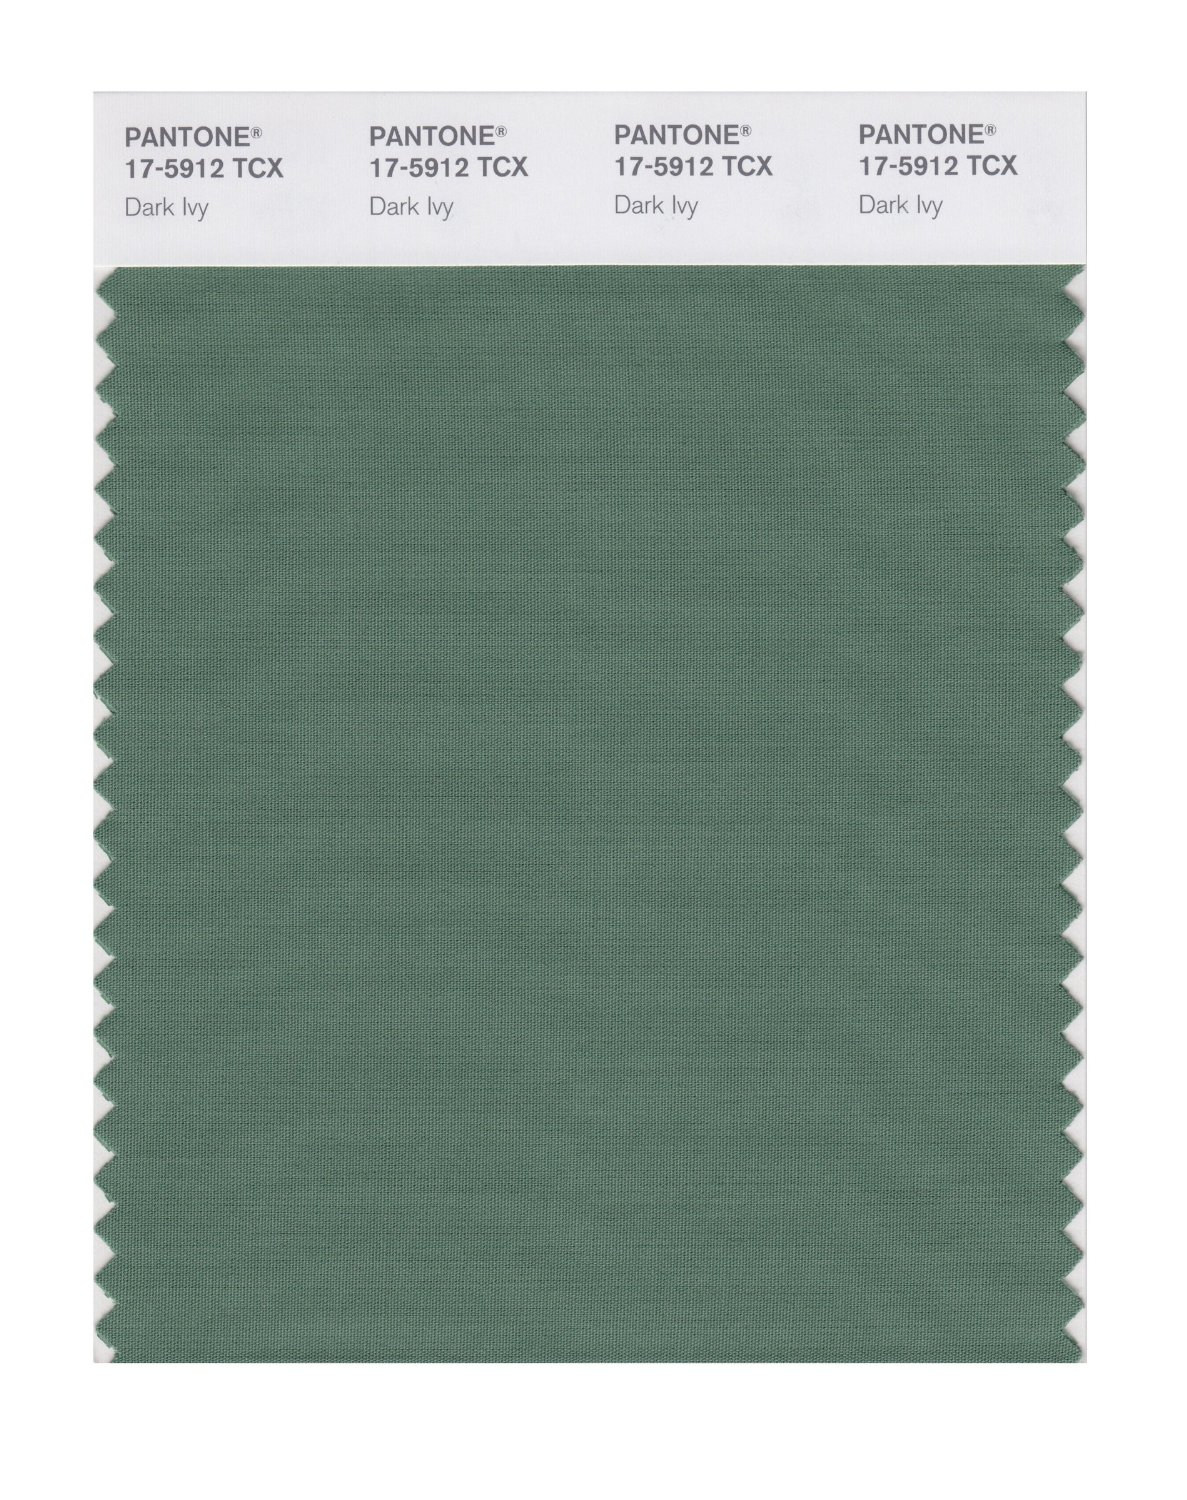 Pantone Smart Swatch 17-5912 Dark Ivy